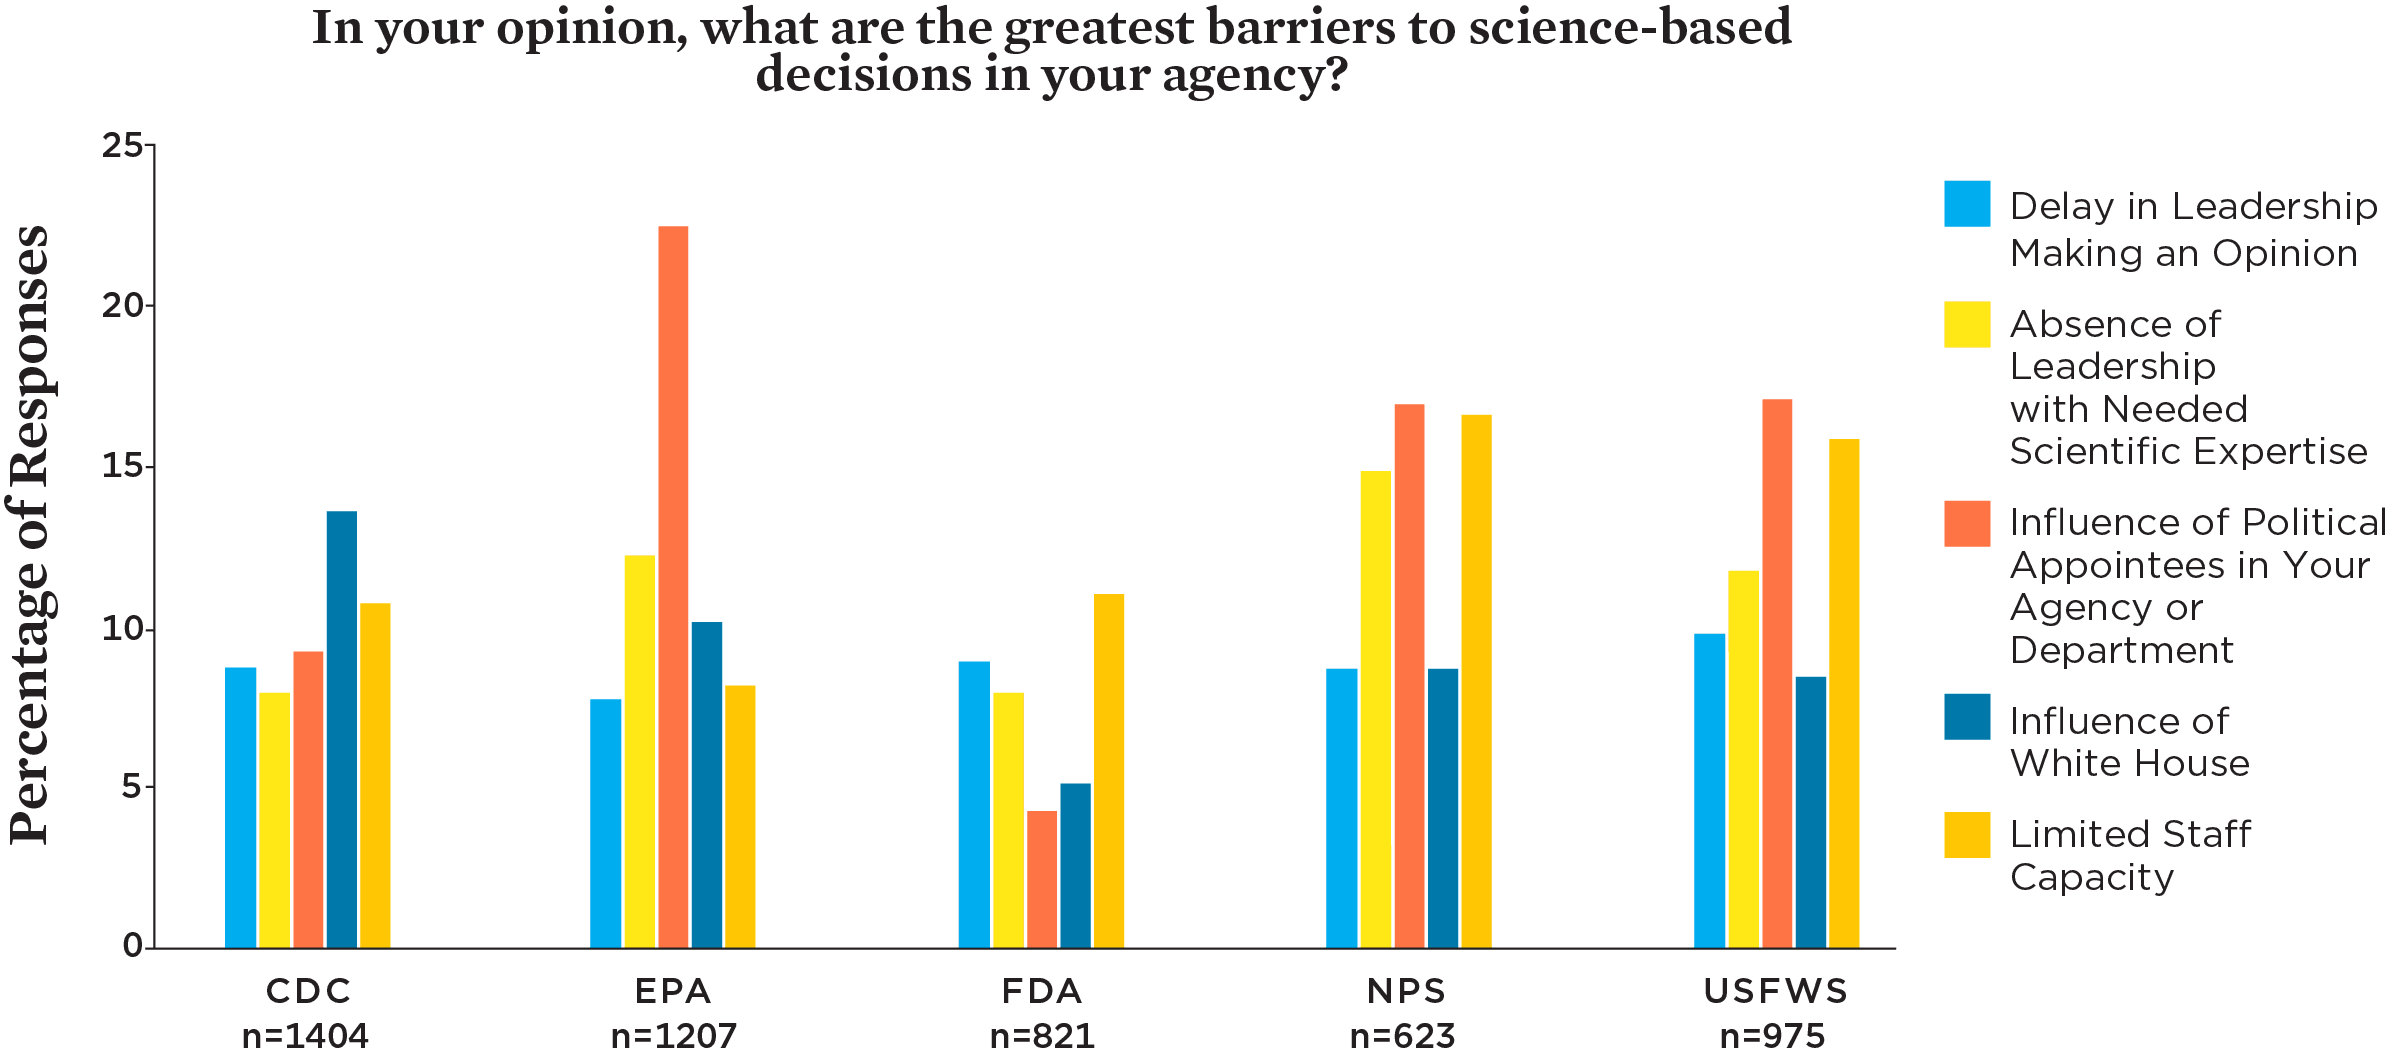 Science Under Trump: Voices of Scientists across 16 Federal